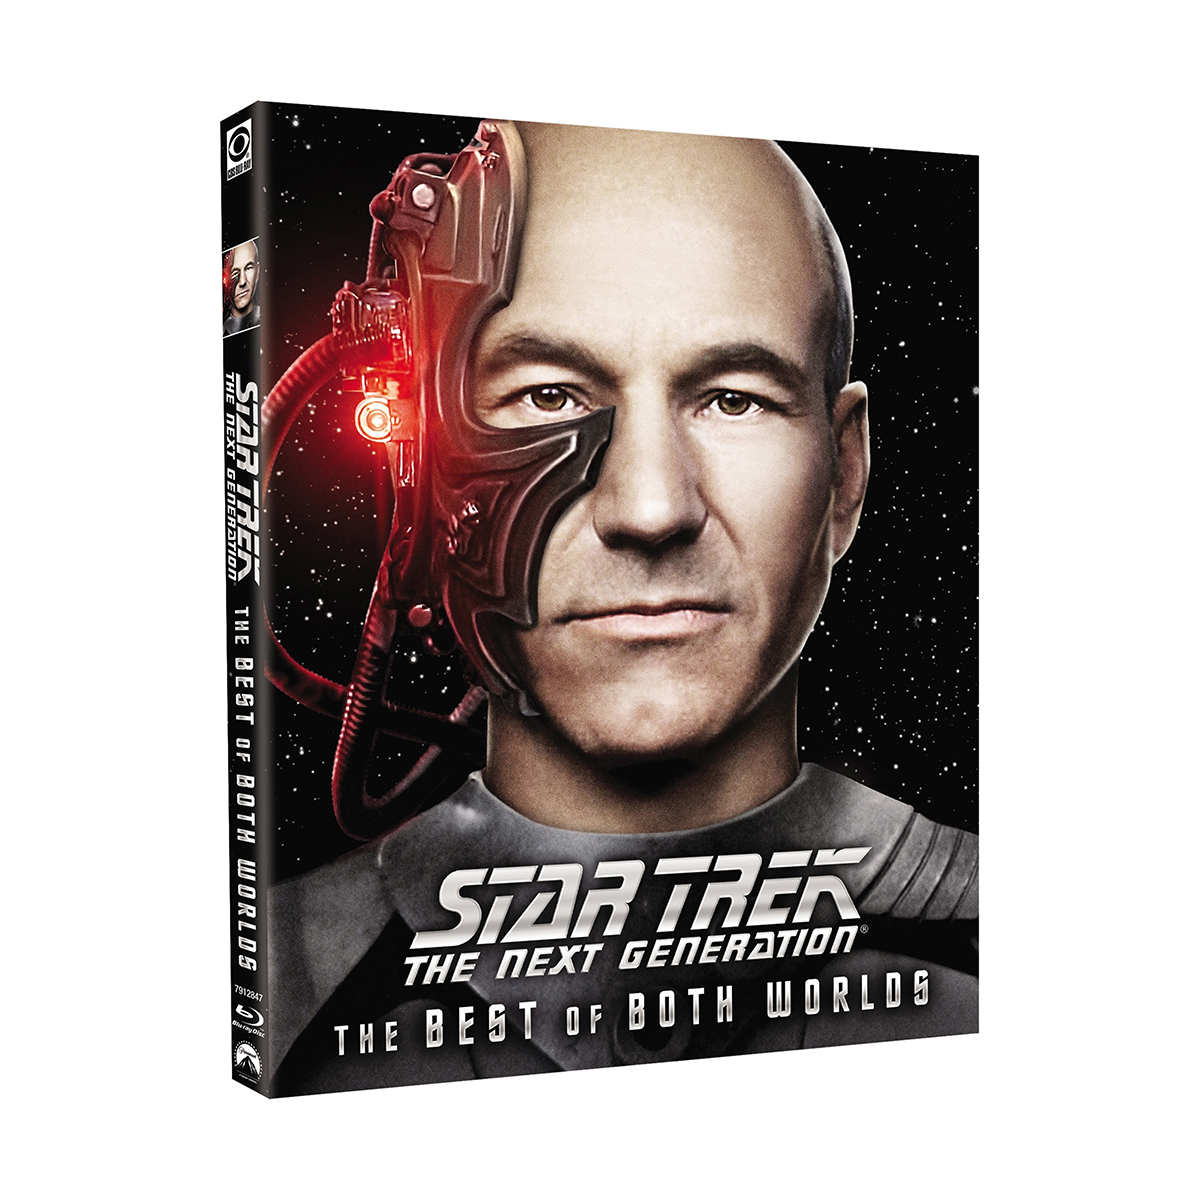 Star Trek: The Next Generation - The Best of Both Worlds Blu-ray